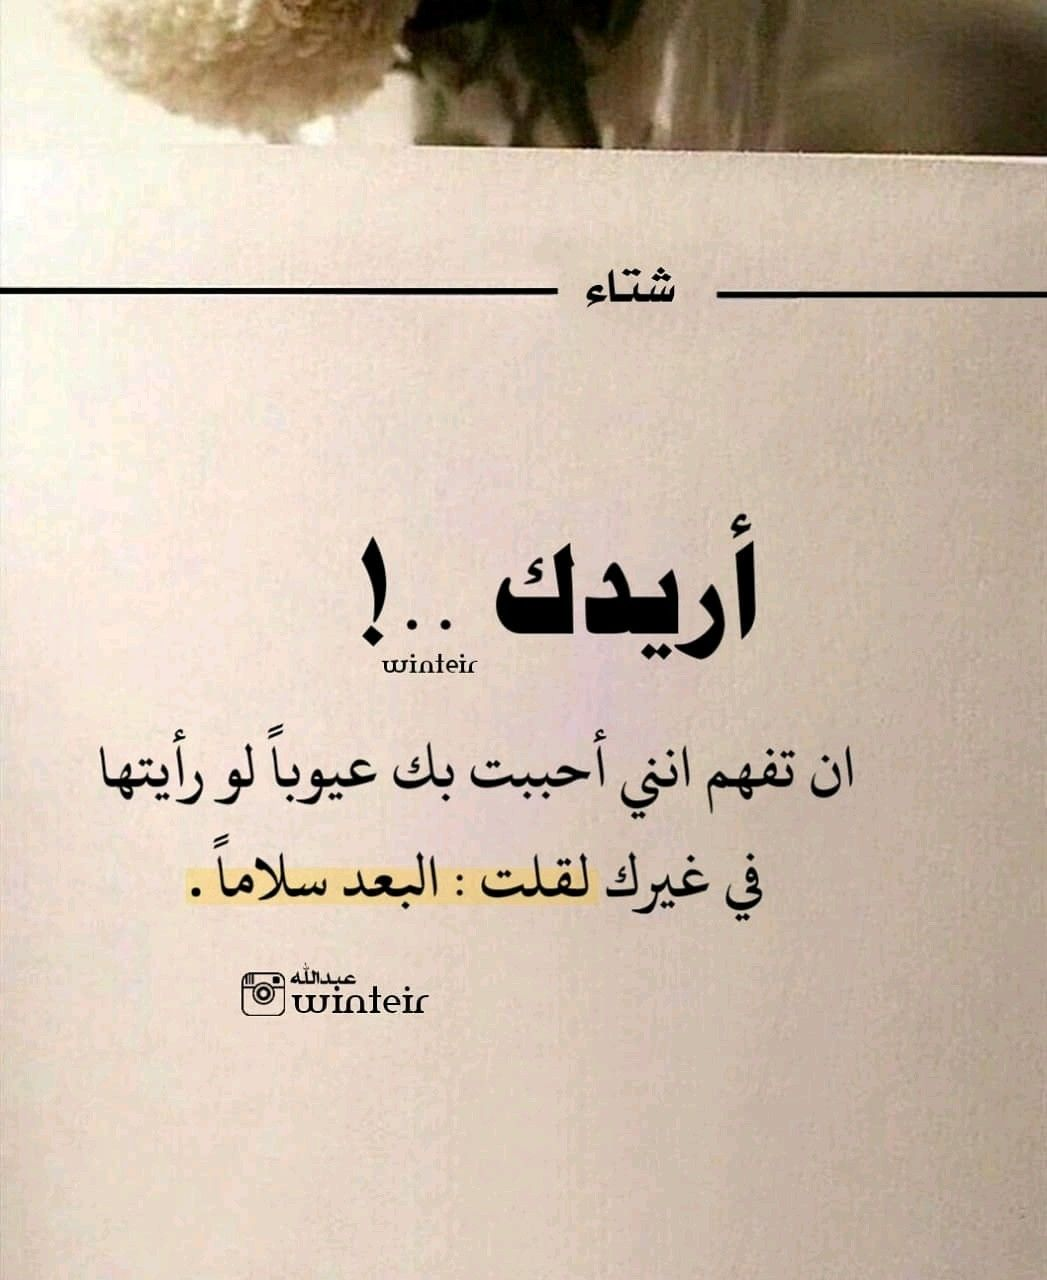 Pin by فاطمة on Pant Words quotes, Arabic love quotes